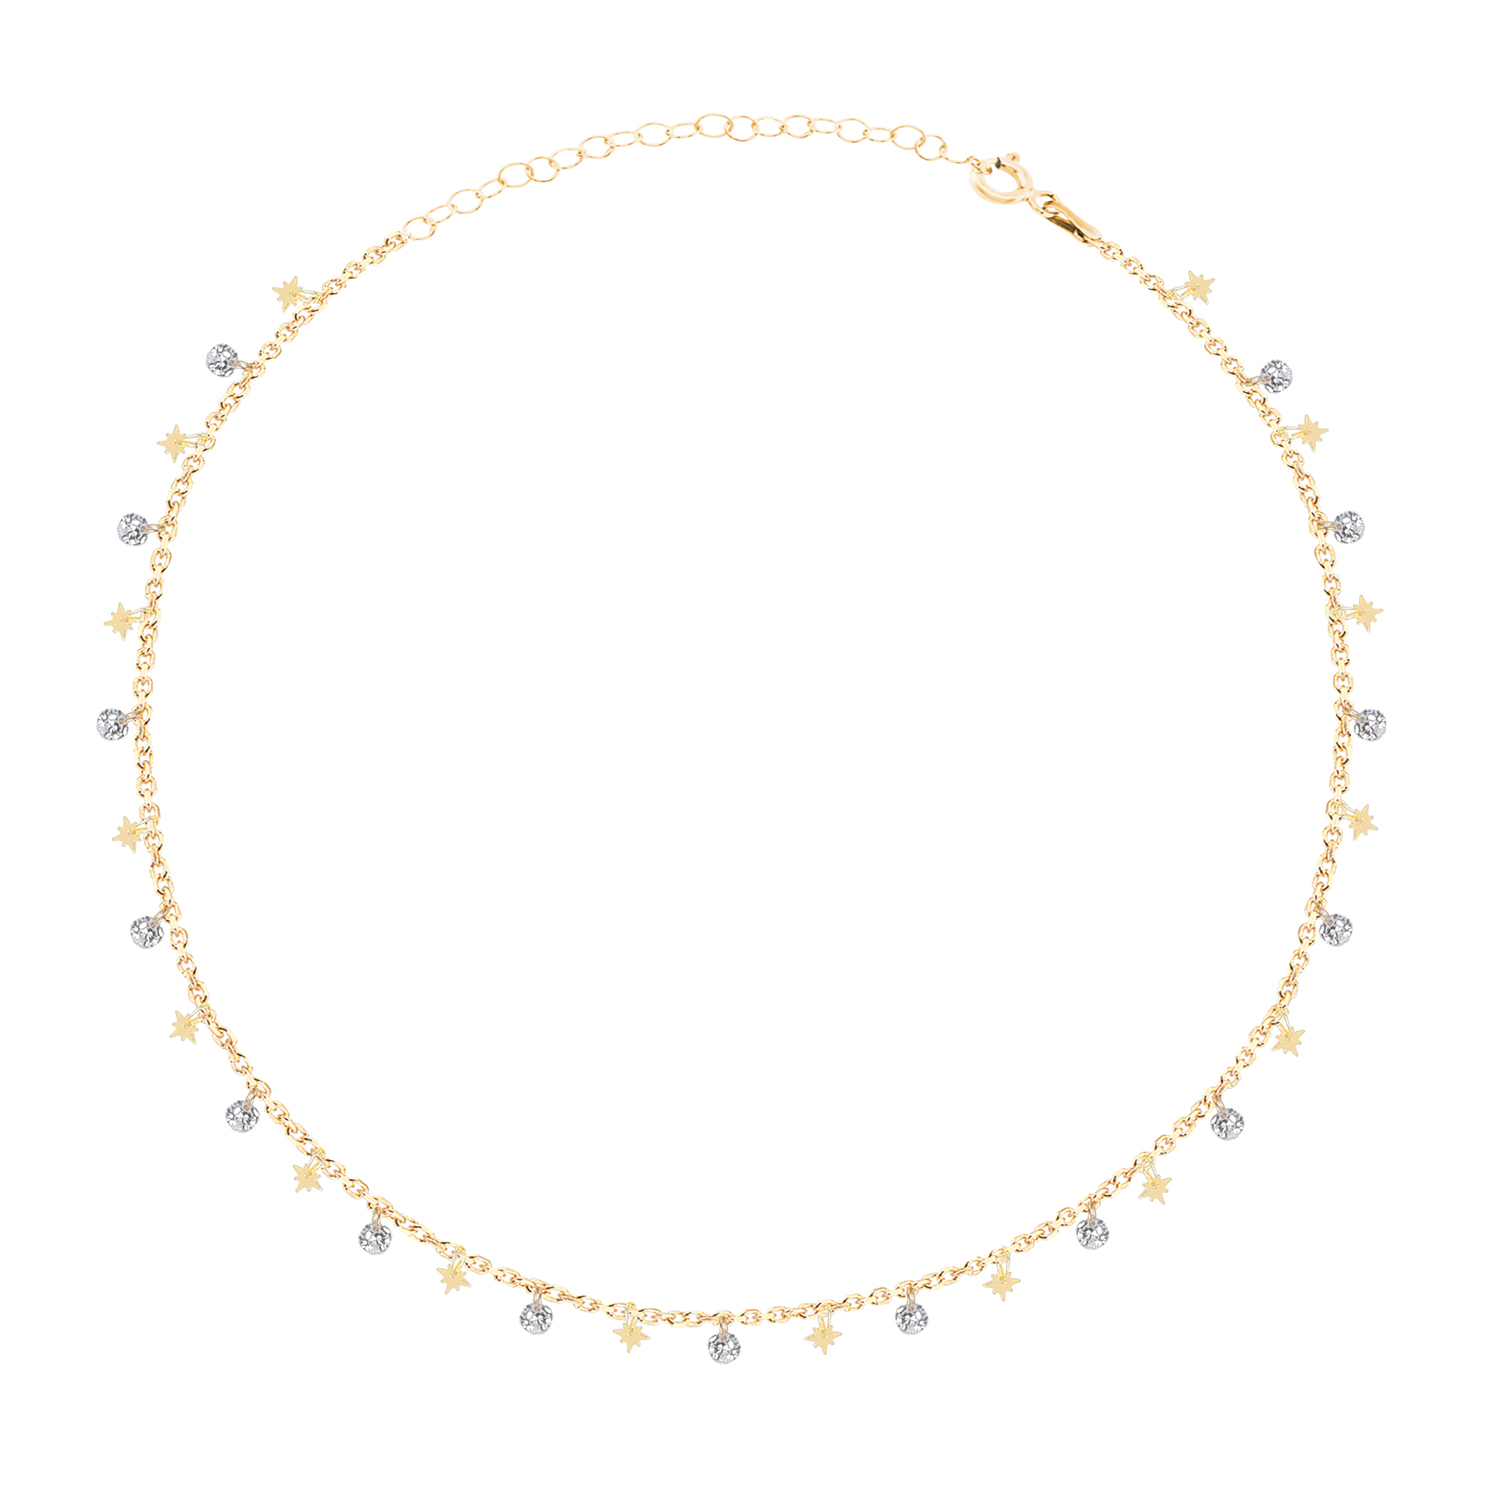 cosar-silver-sterling-silver-925-necklace-with-stars